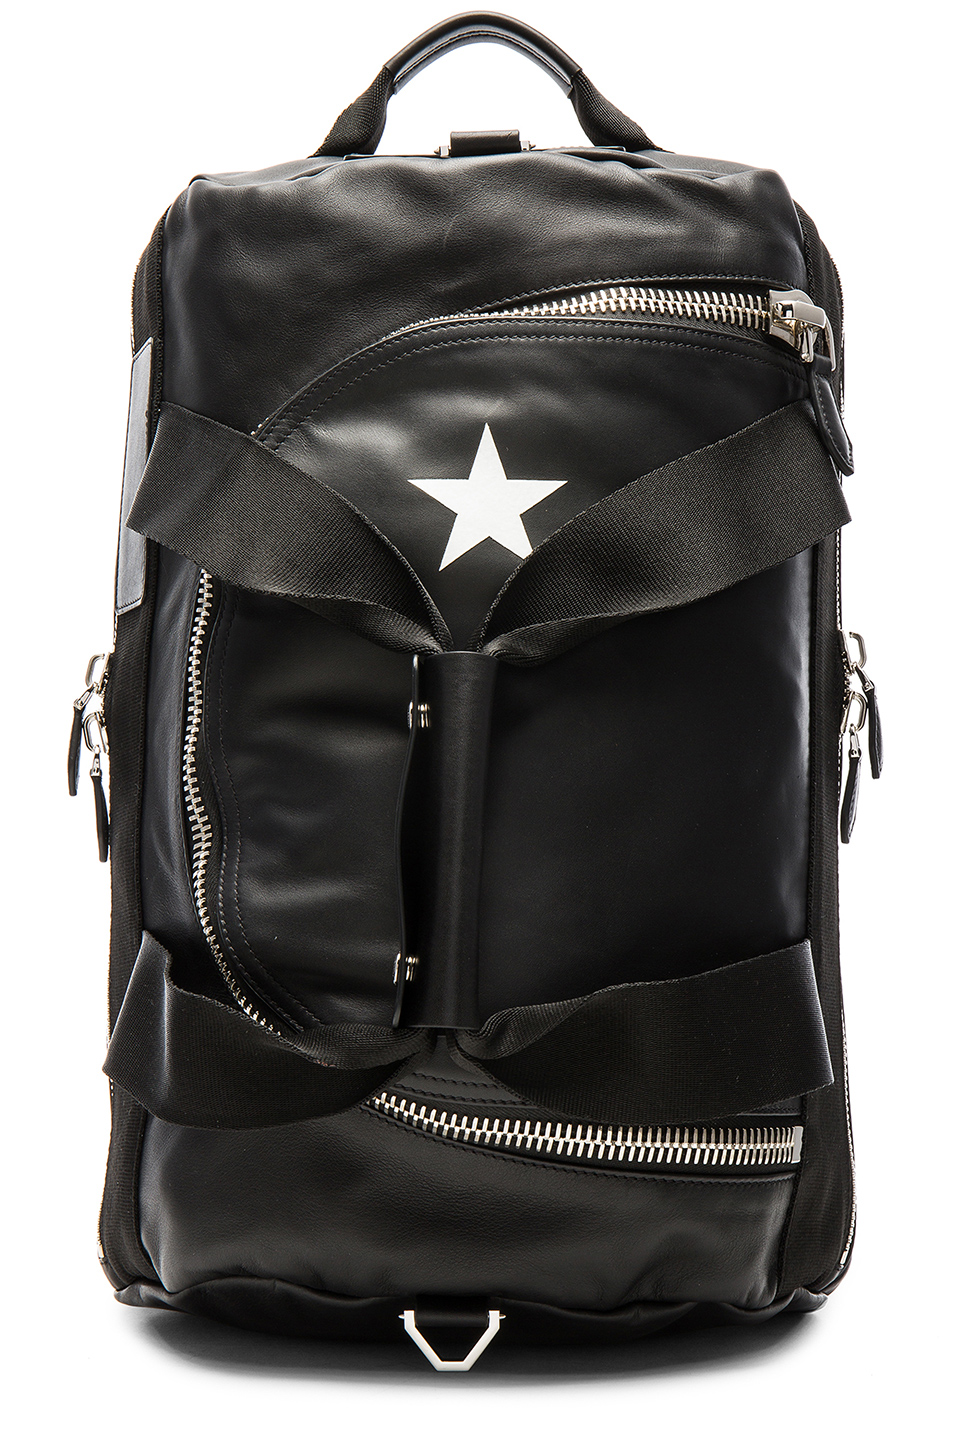 Photo of Givenchy Leather & Star Backpack in Black - shop Givenchy menswear